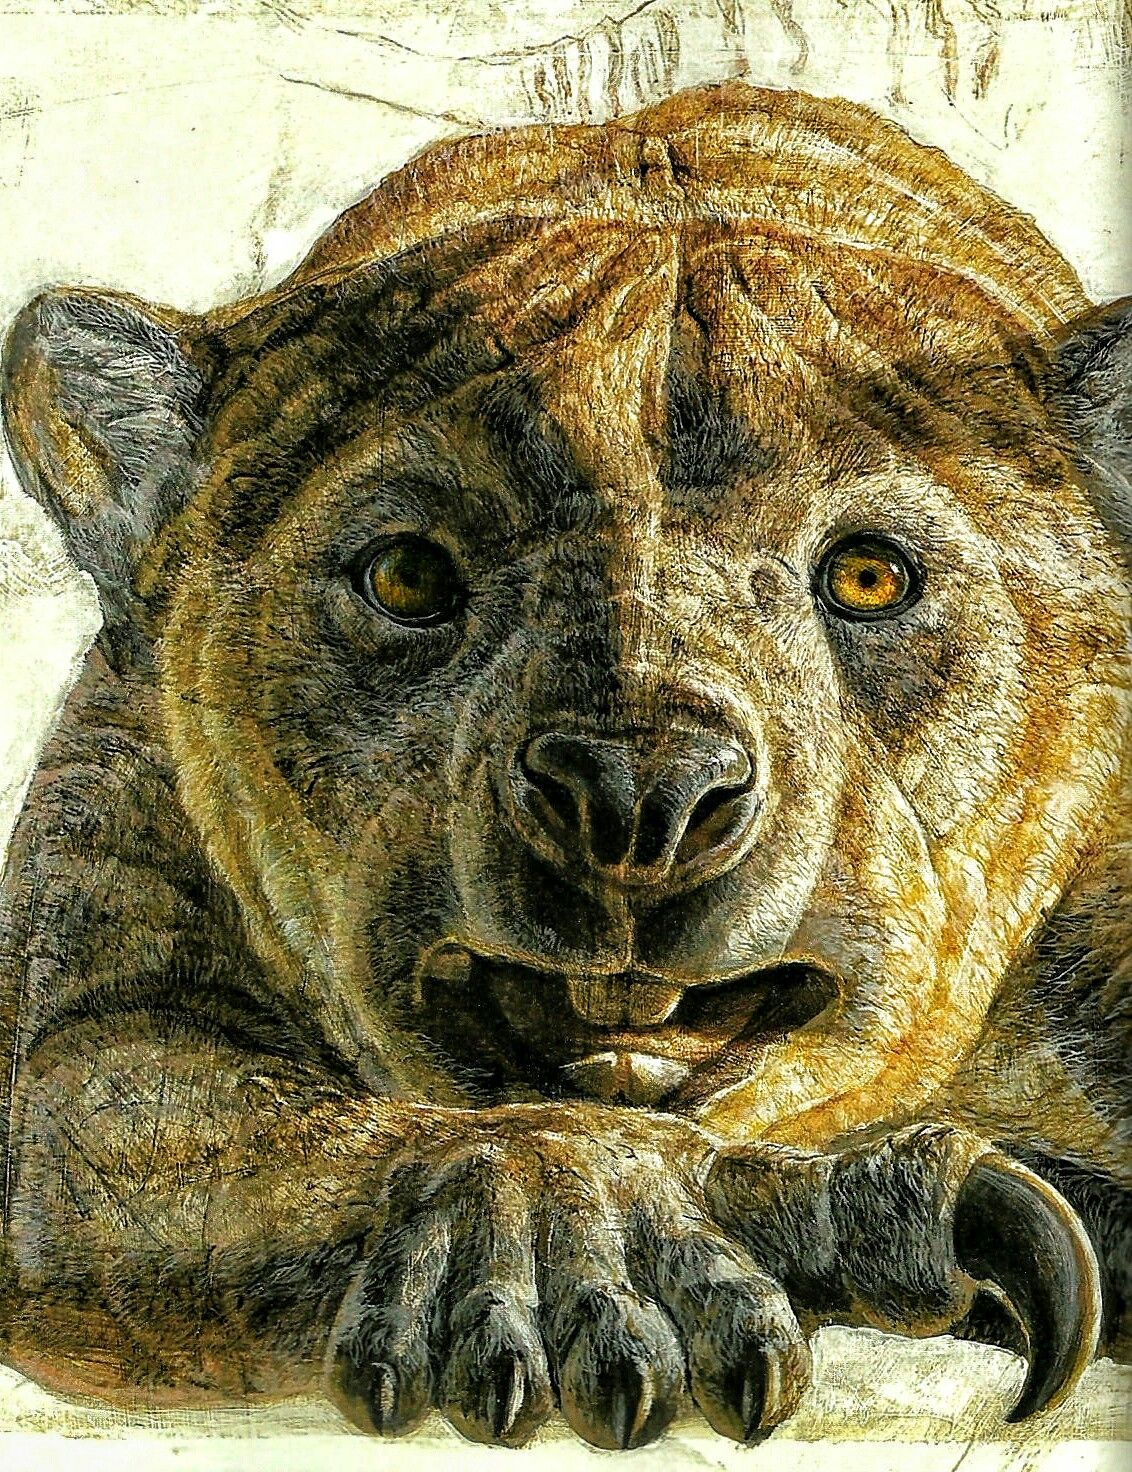 Thylacoleo Carnifex Pouch Lion Is An Extinct Genus Of Carnivorous Marsupials That Lived In Austra Prehistoric Animals Extinct Animals Prehistoric Creatures